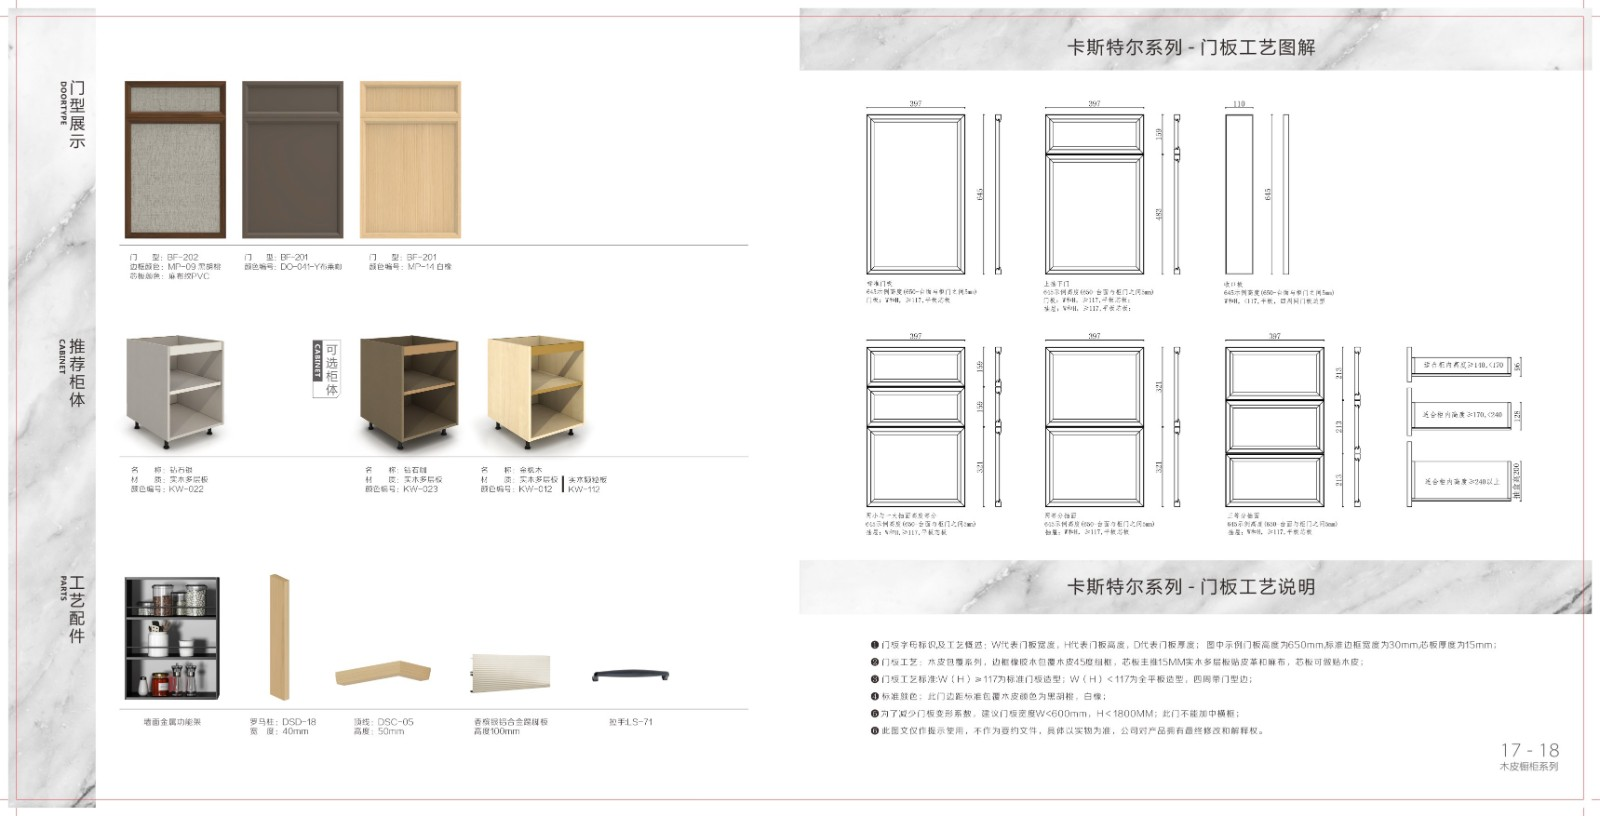 elegance solid wood kitchen cabinets modular supply exhibition hall-7